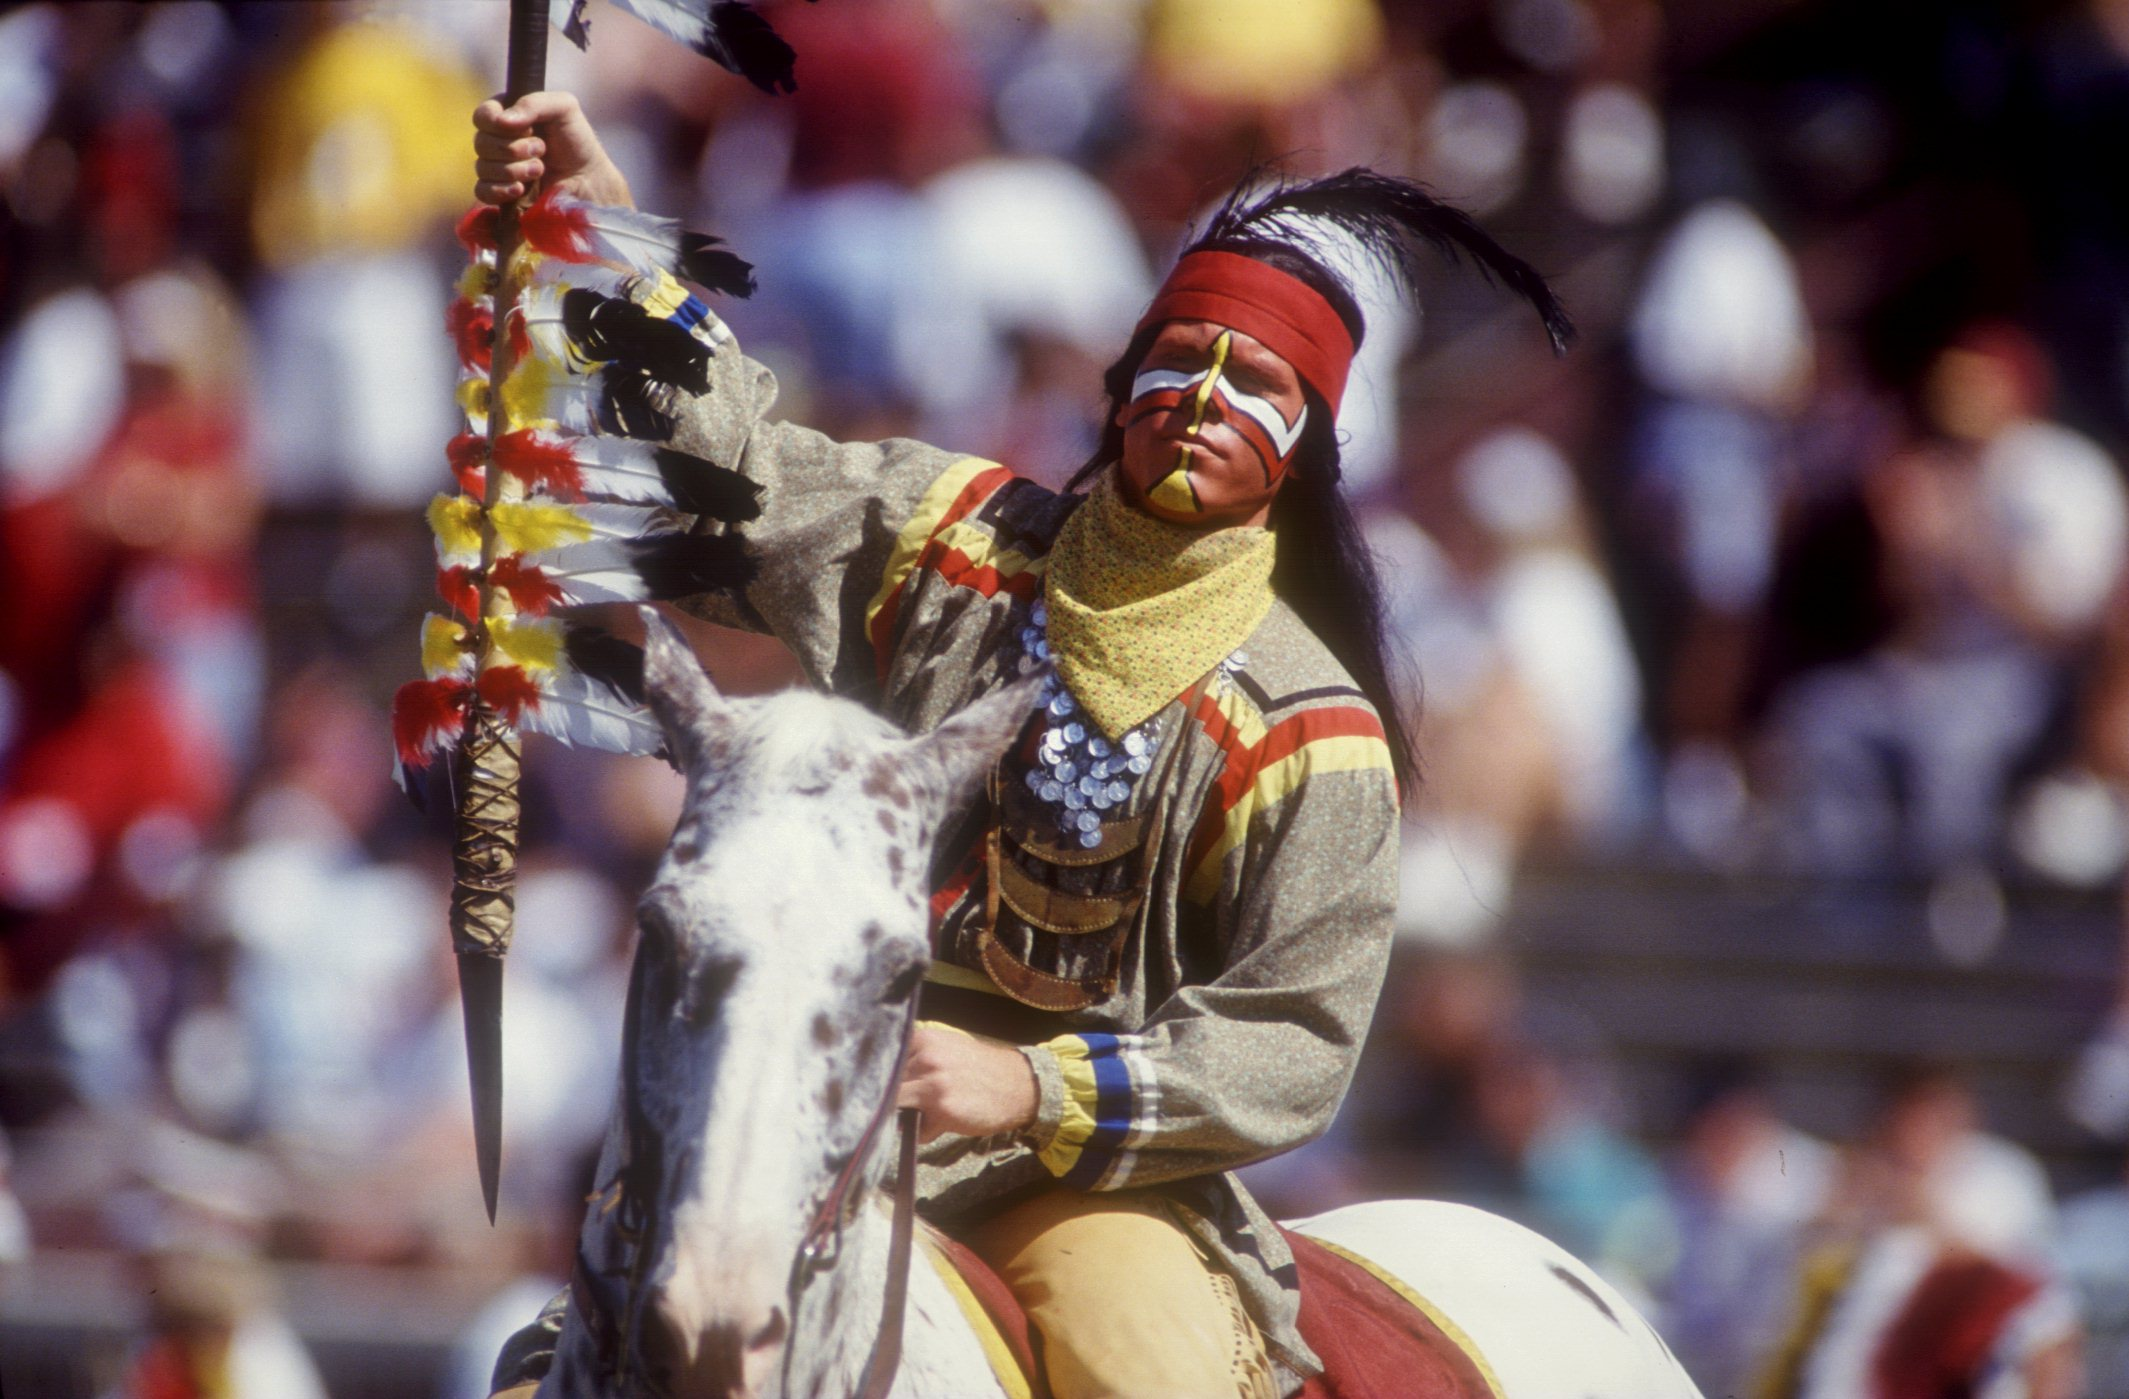 What is the battle where Indians got the name Redskins?